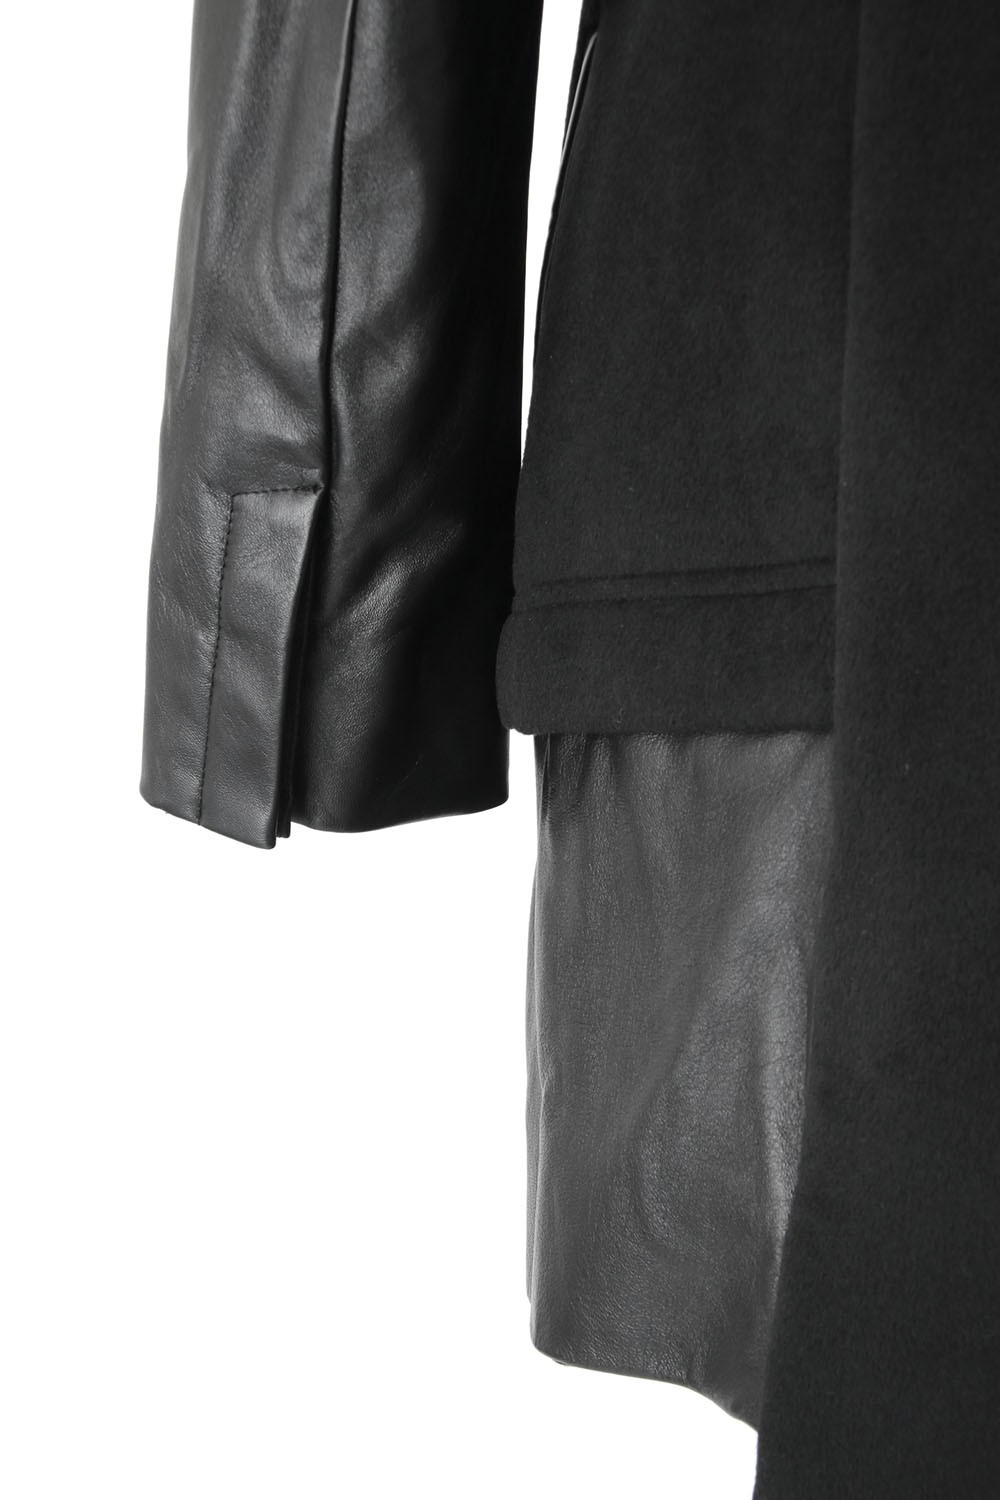 Arm Leather Chester Coat - ag-0829